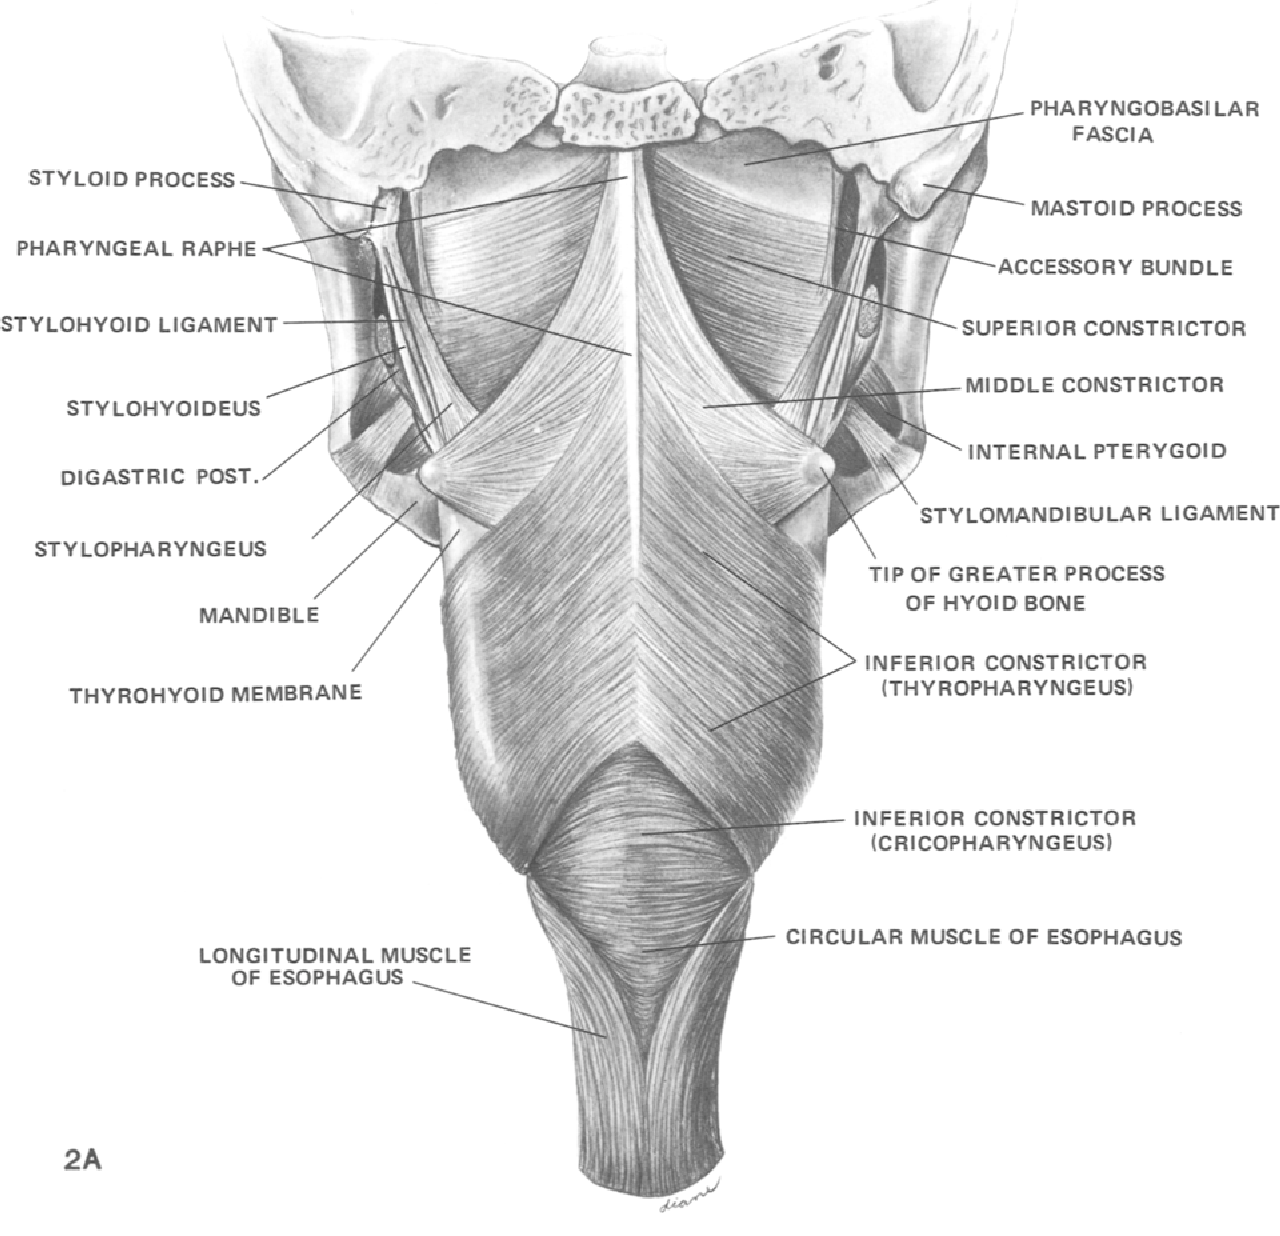 Anatomy And Physiology Of The Pharynx Semantic Scholar